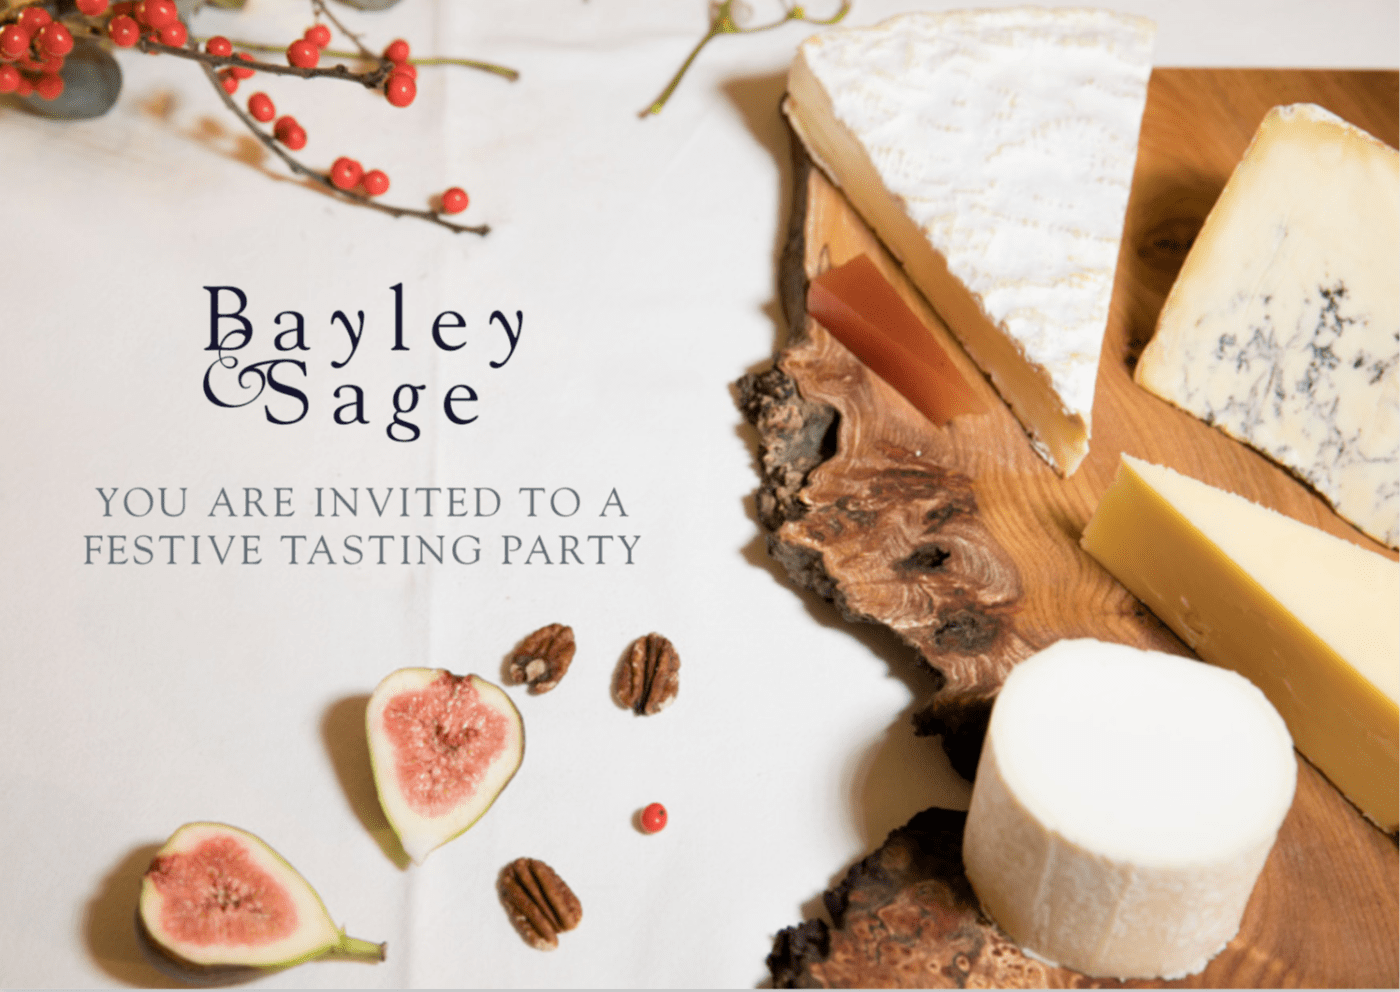 You Are Invited To Our Festive Tasting Party!